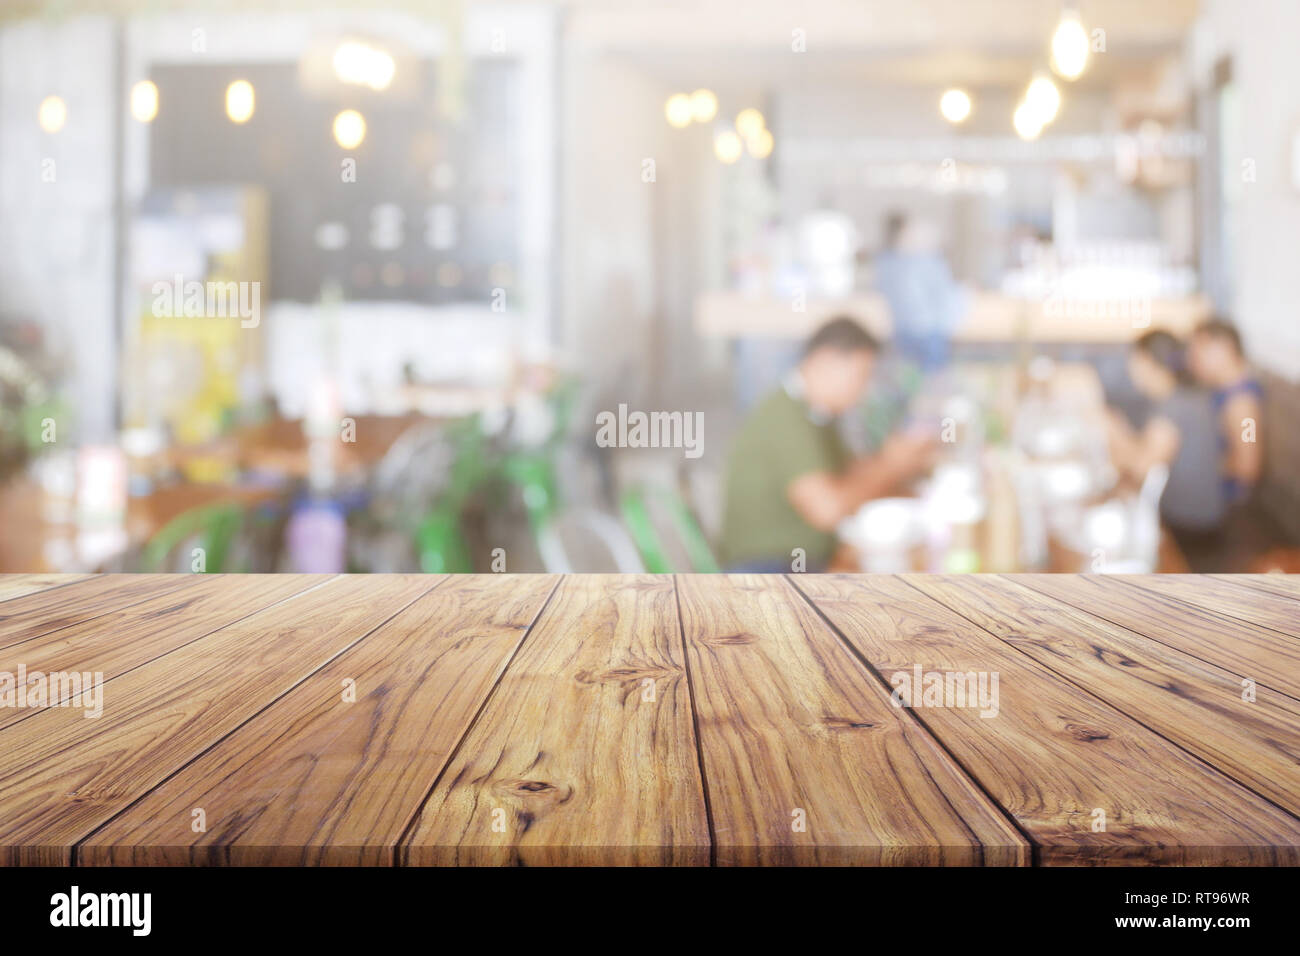 Blank Wood Table Top With People At Restaurant Or Coffee Cafe Background For Montage Product Present Stock Photo Alamy